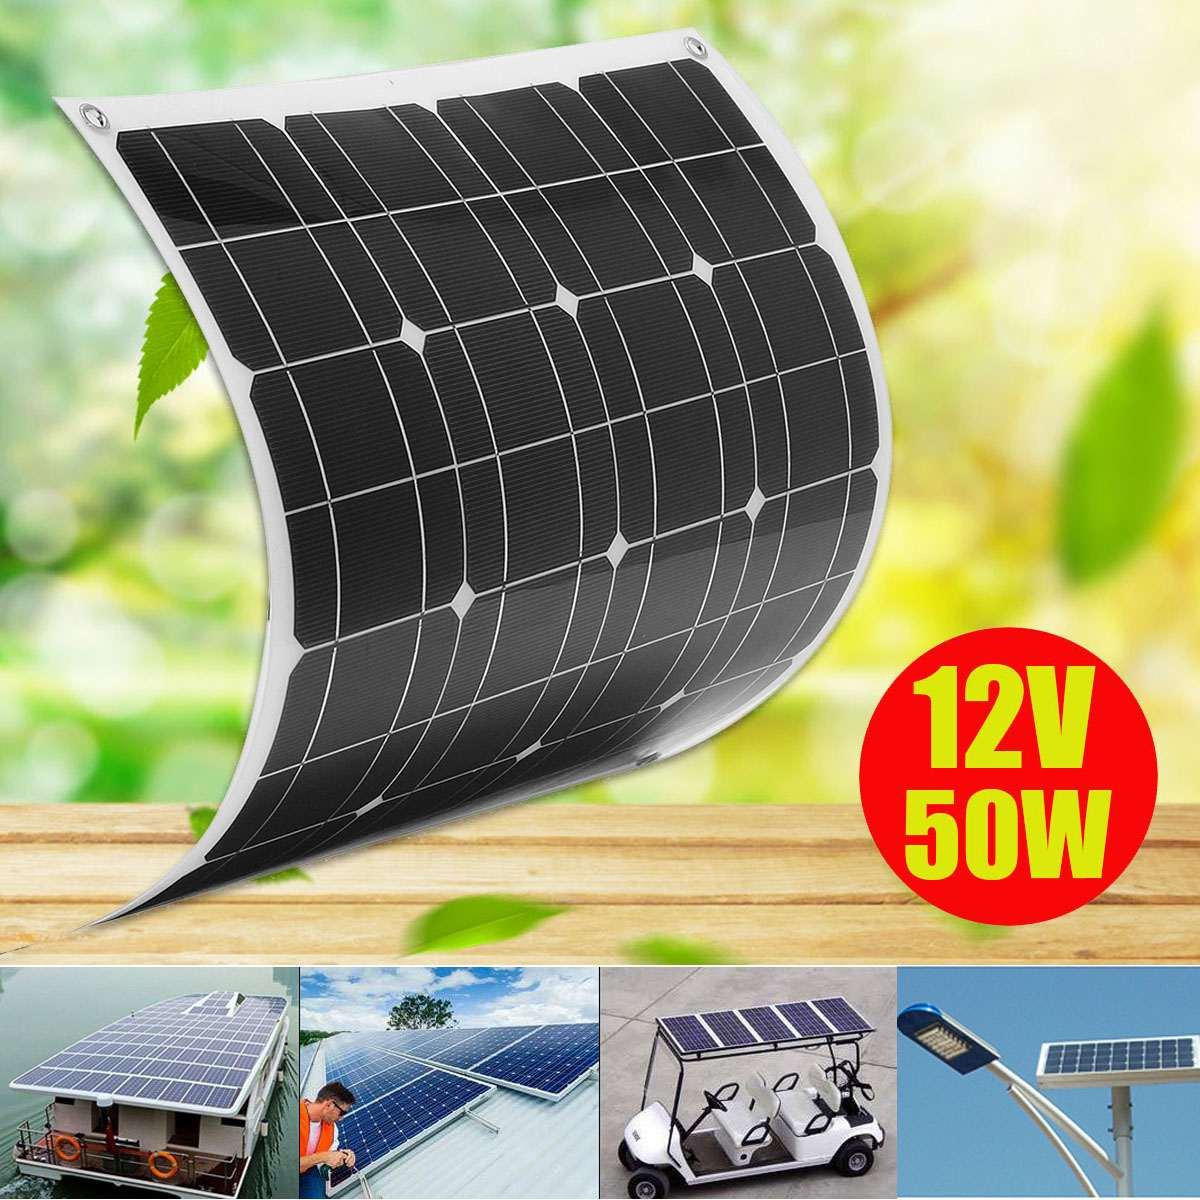 KINCO 12V/50W Semi-Flexible Solar Panel Monocrystalline Silicon Solar System Power Supply For Car Battery Charger sp 36 120w 12v semi flexible monocrystalline solar panel waterproof high conversion efficiency for rv boat car 1 5m cable